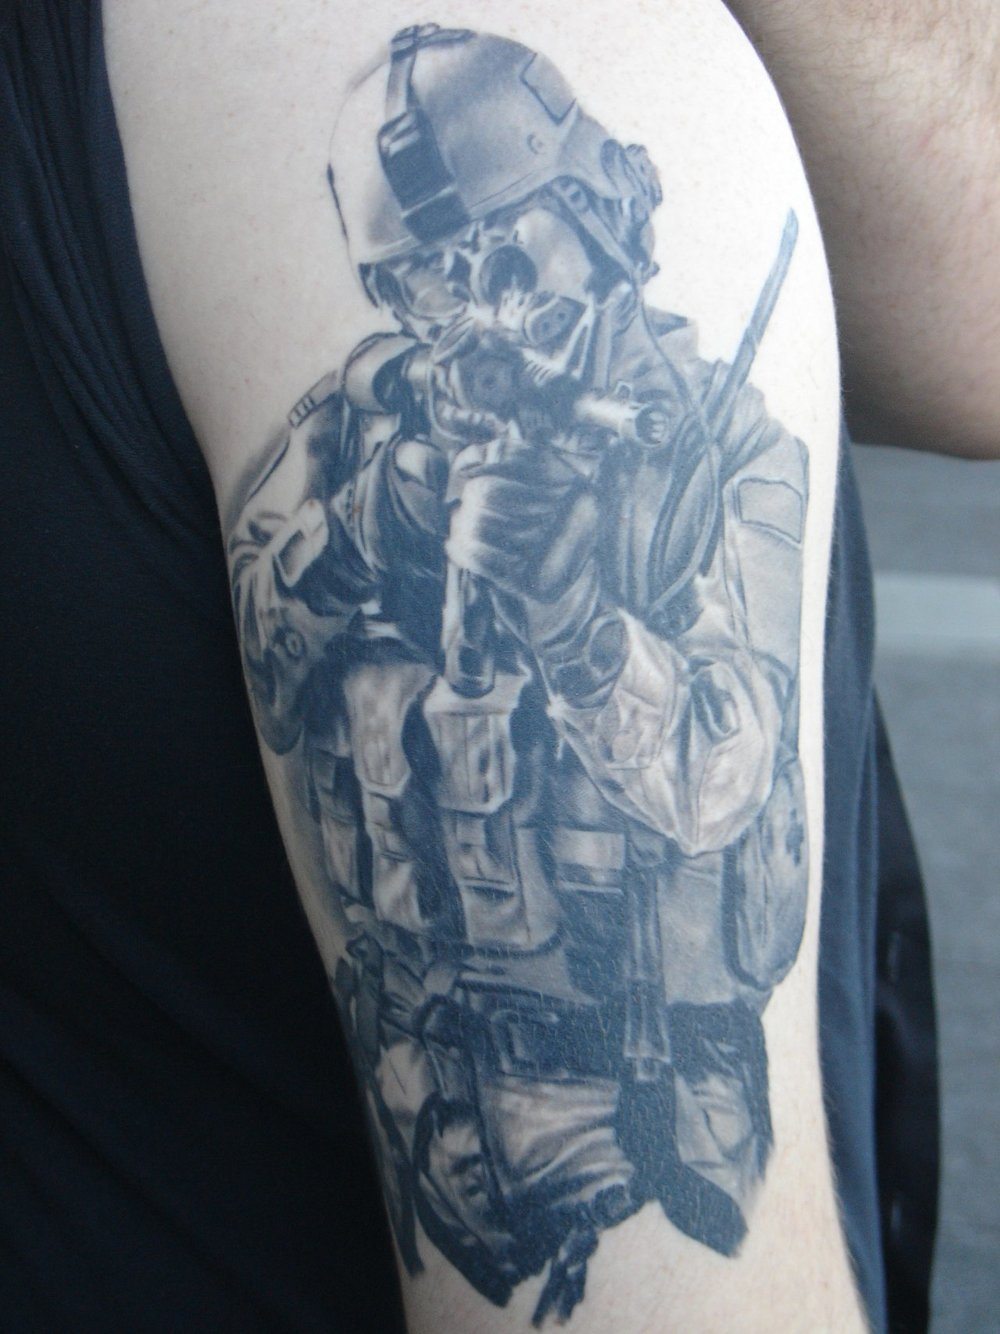 special_forces_healed_by_mrstaggerlee-d762sz0.jpg